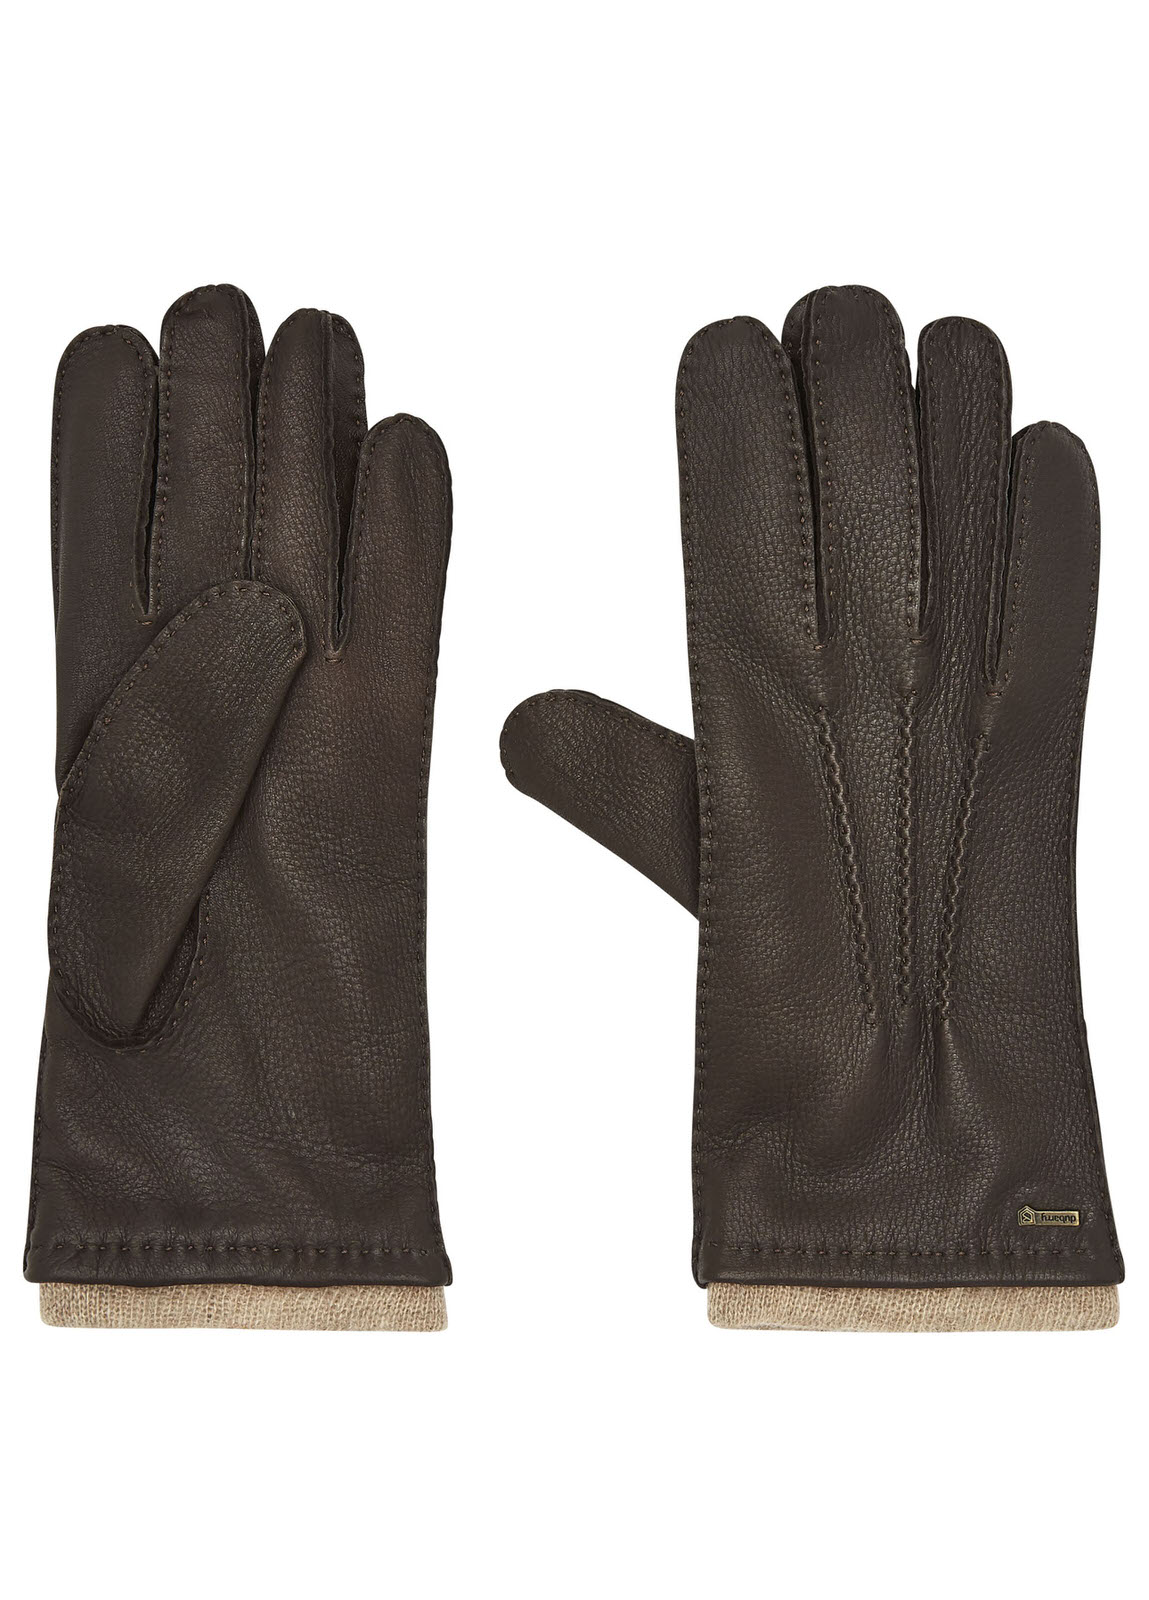 Kilconnell_Leather_Gloves_Mahogany_Image_1